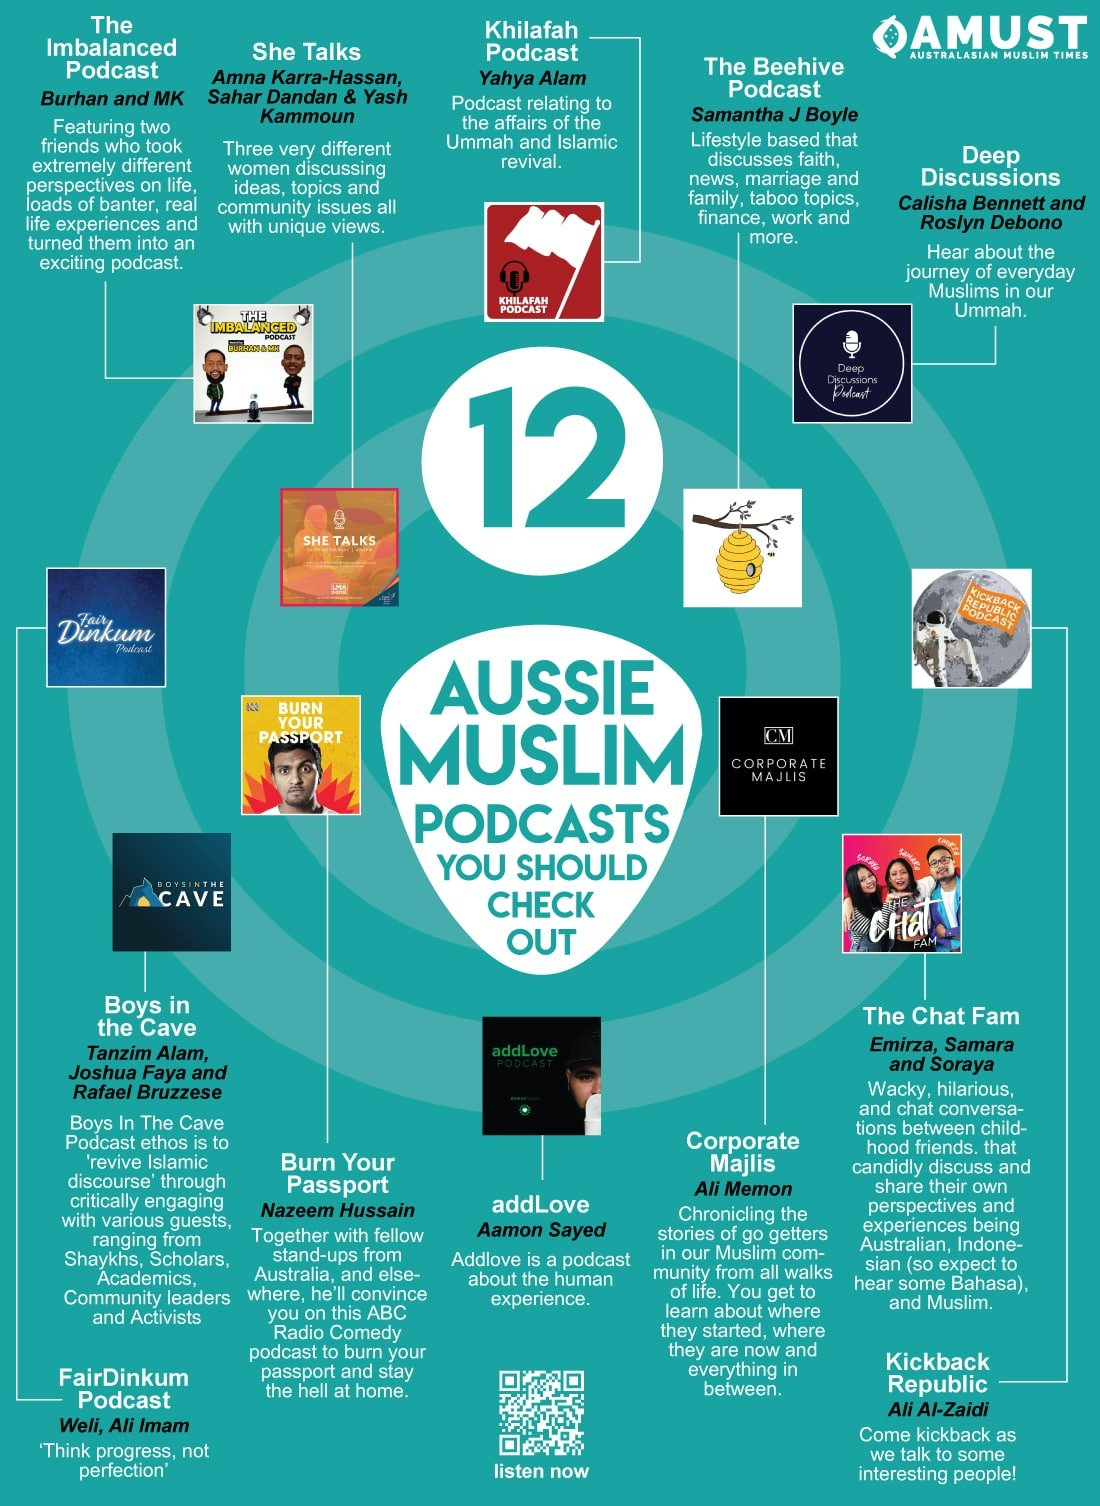 12 Aussie Muslim Podcasts you should check out